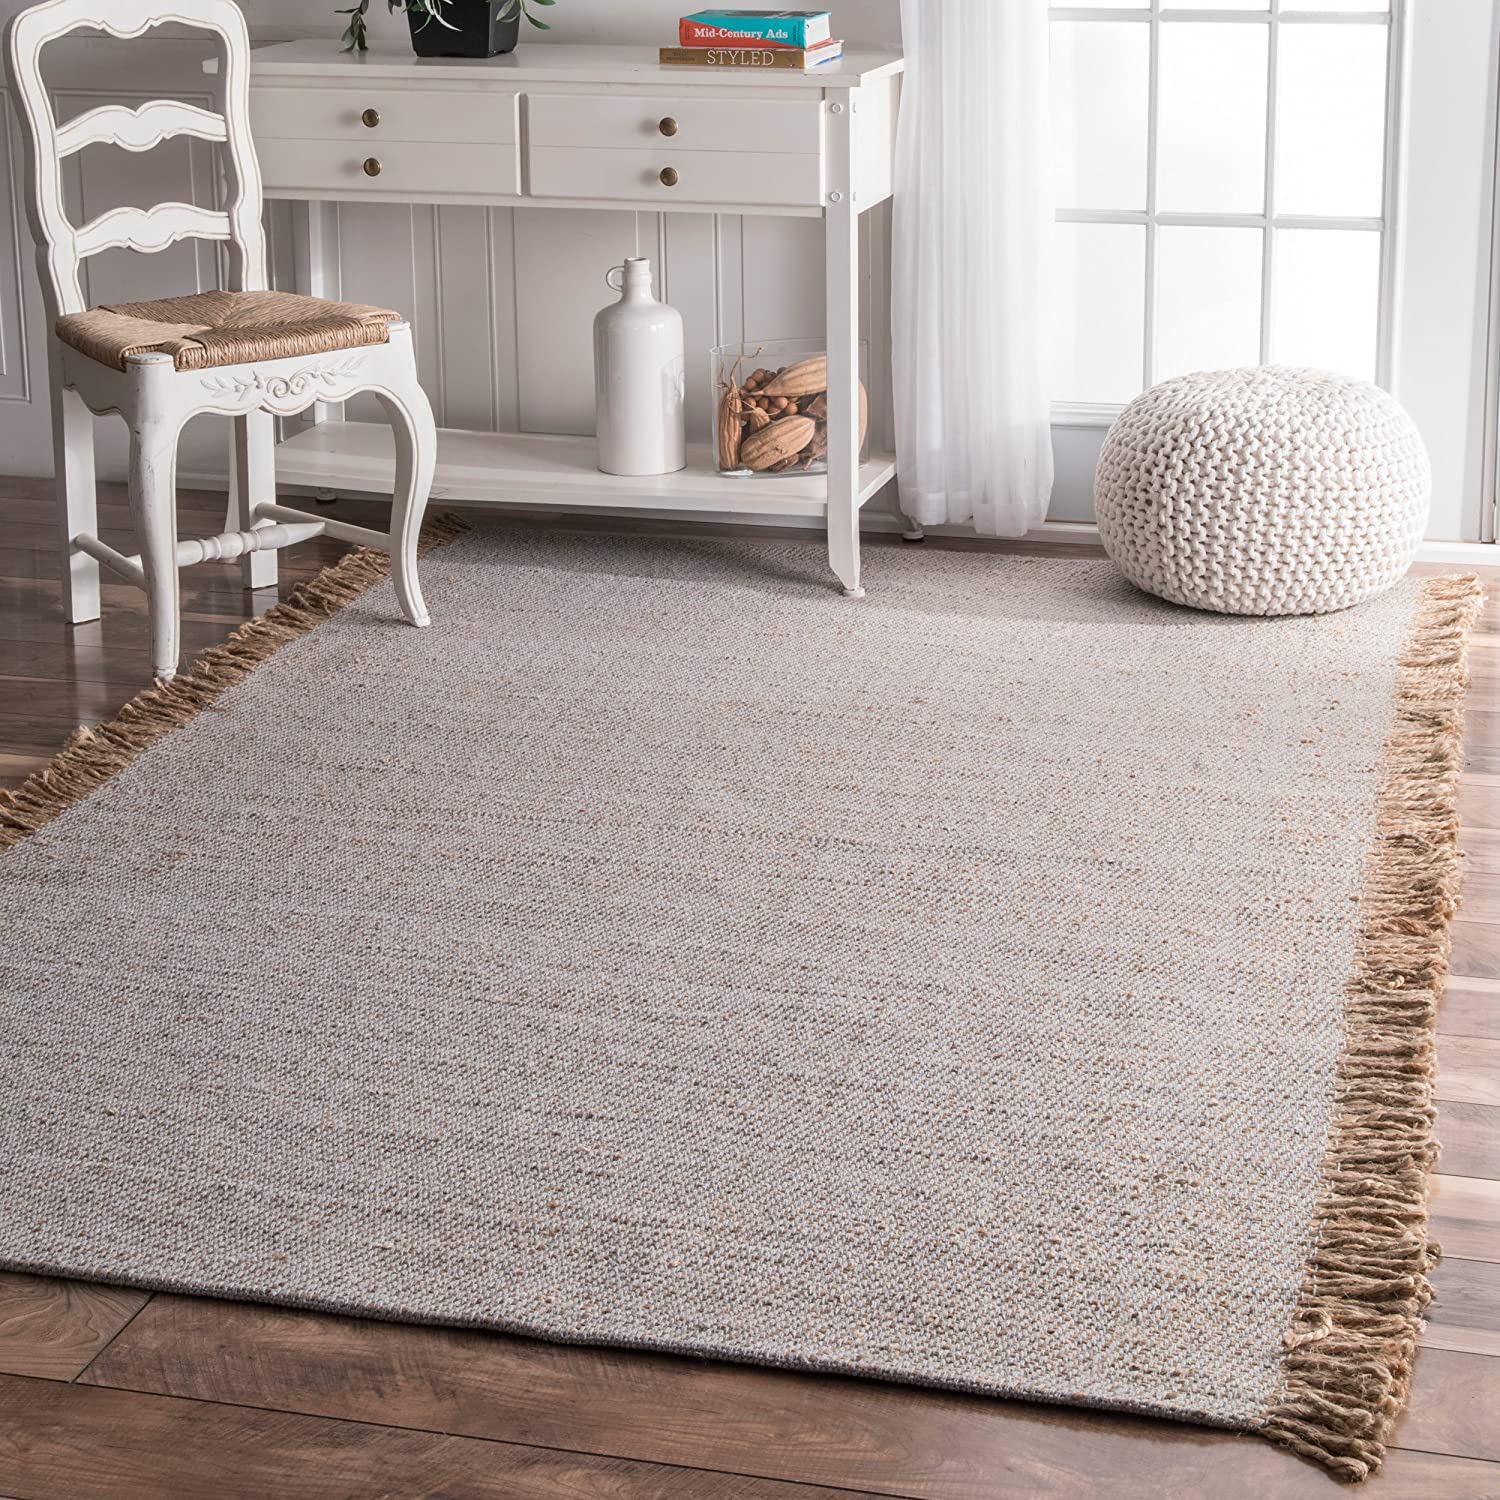 Solid Tassel Grey Area Rugs,